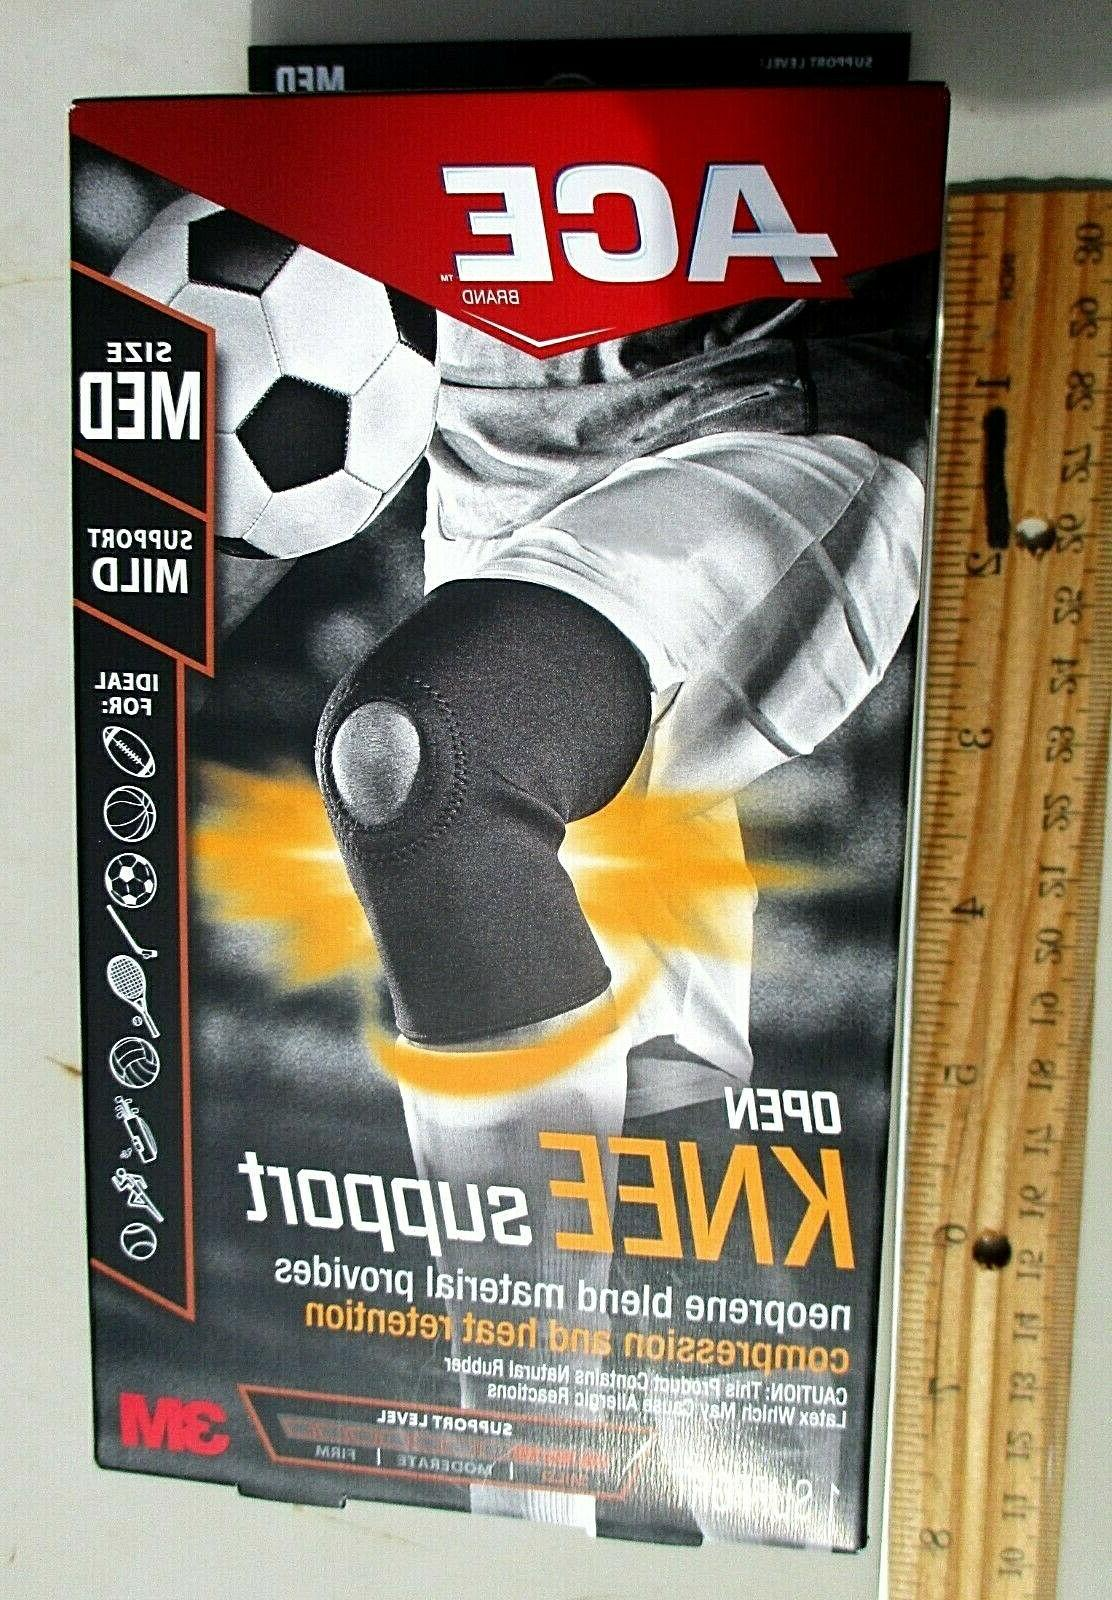 NEW ACE OPEN KNEE SUPPORT SIZE MEDIUM SUPPORT MILD #907005 N